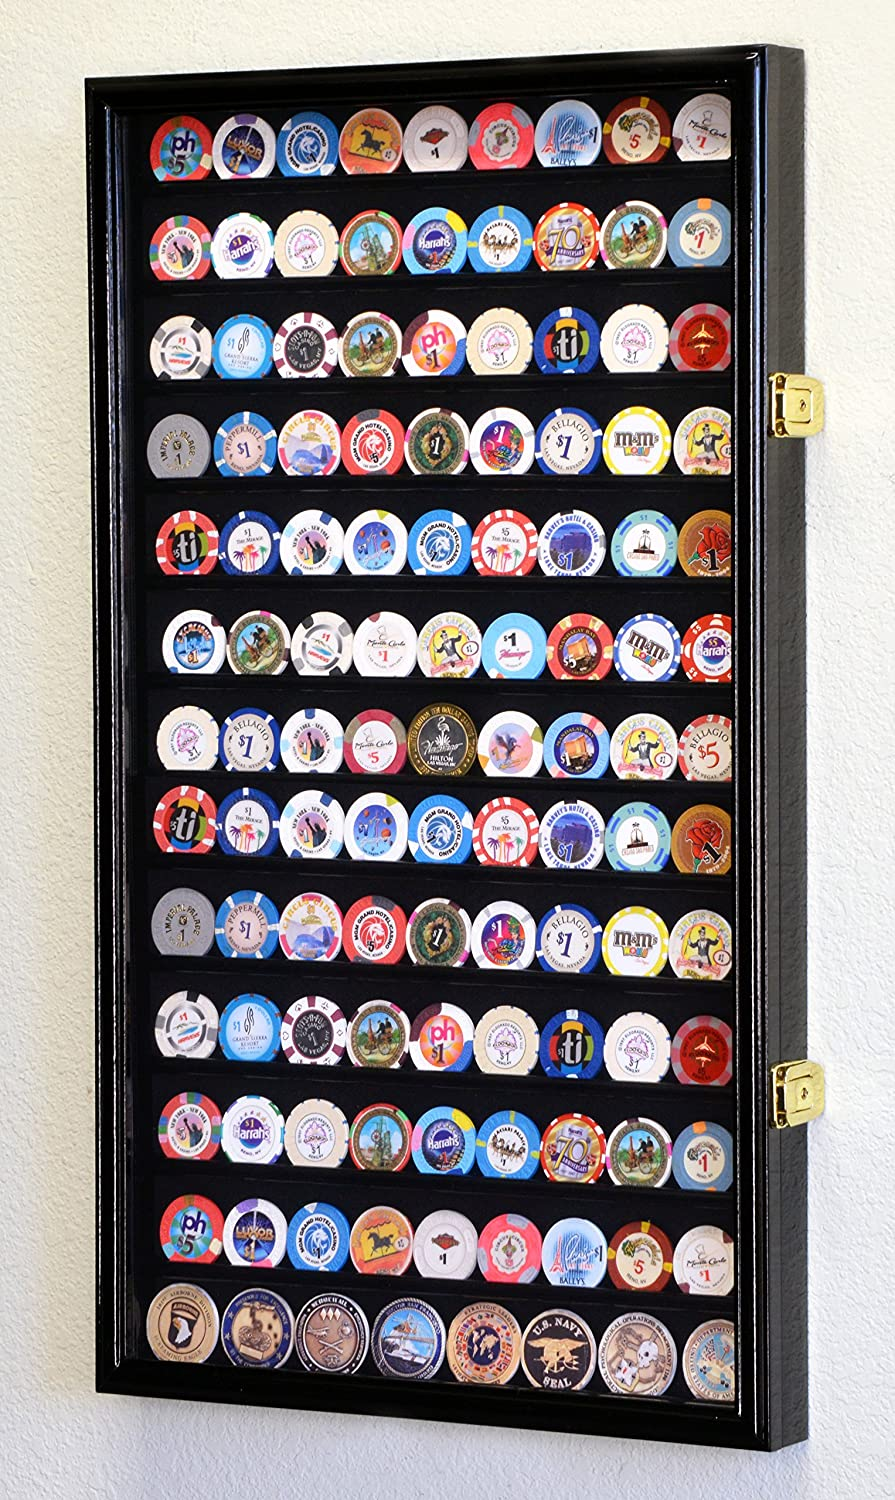 Large Casino Coin Chips Display Case Cabinet Holder 98% UV Locks Holds 117 Coins